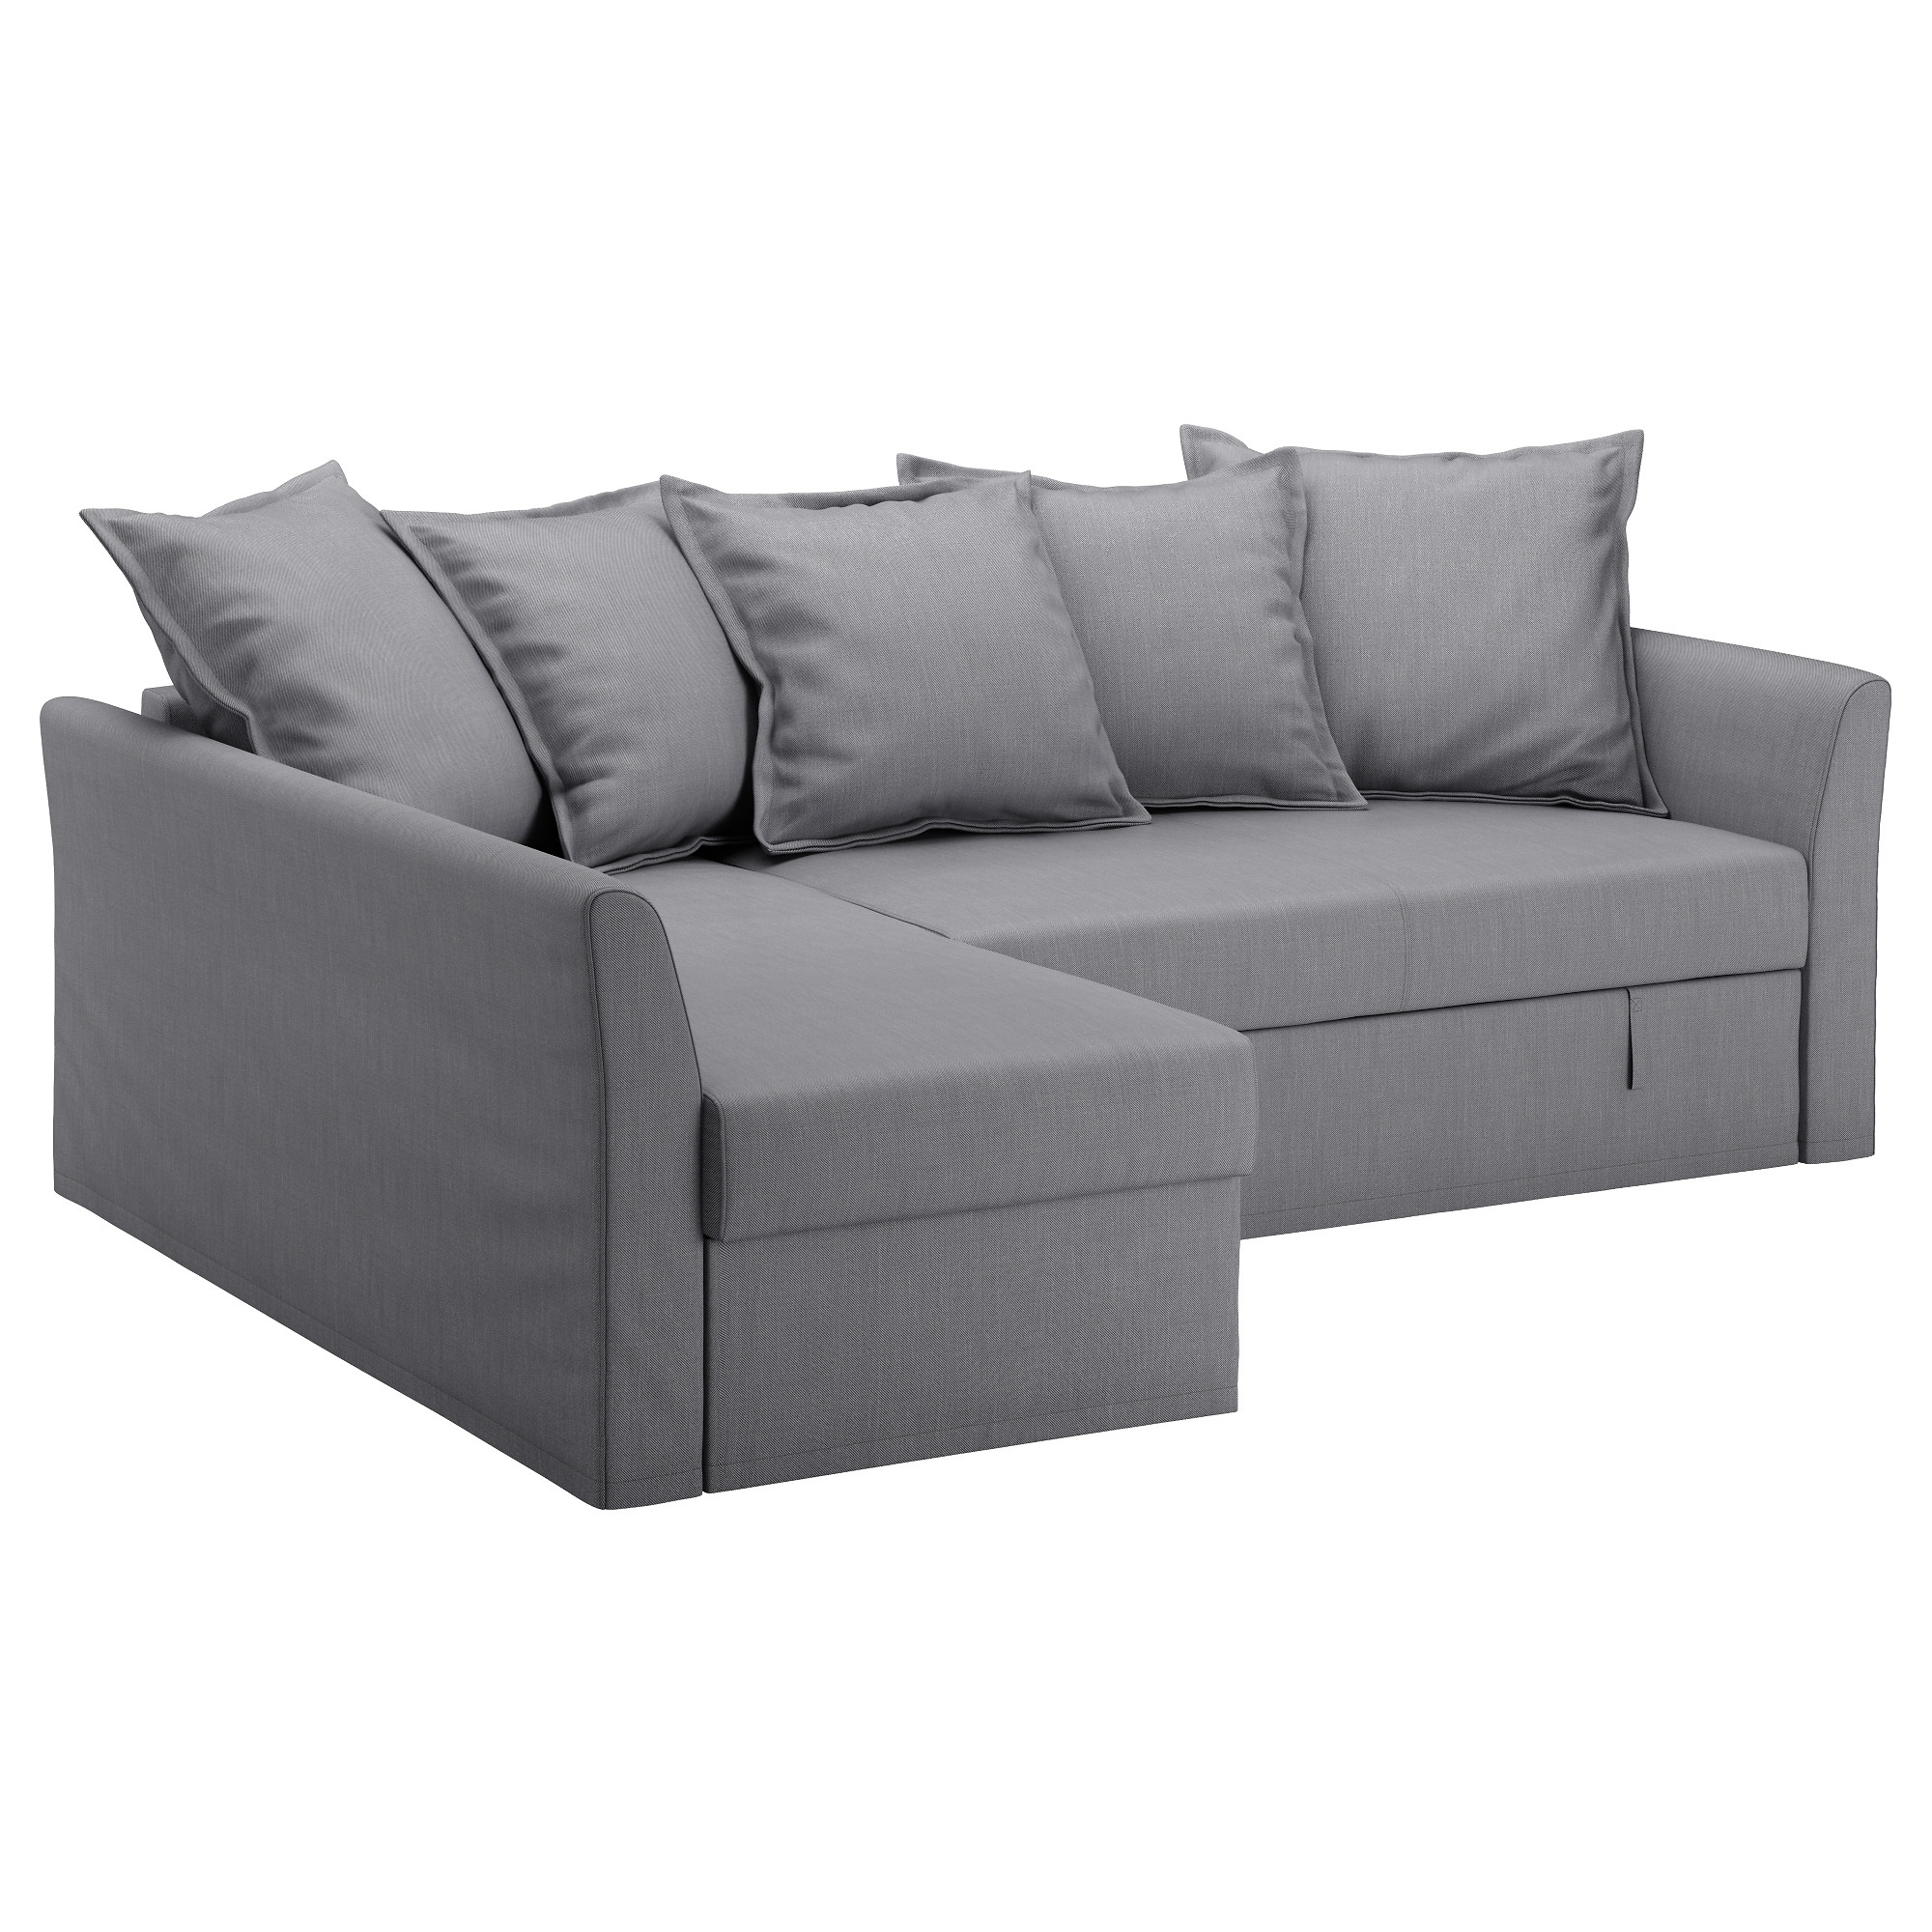 Ikea Chaise Couches Pertaining To Fashionable Holmsund Sleeper Sectional, 3 Seat – Orrsta Light White Gray – Ikea (View 7 of 15)